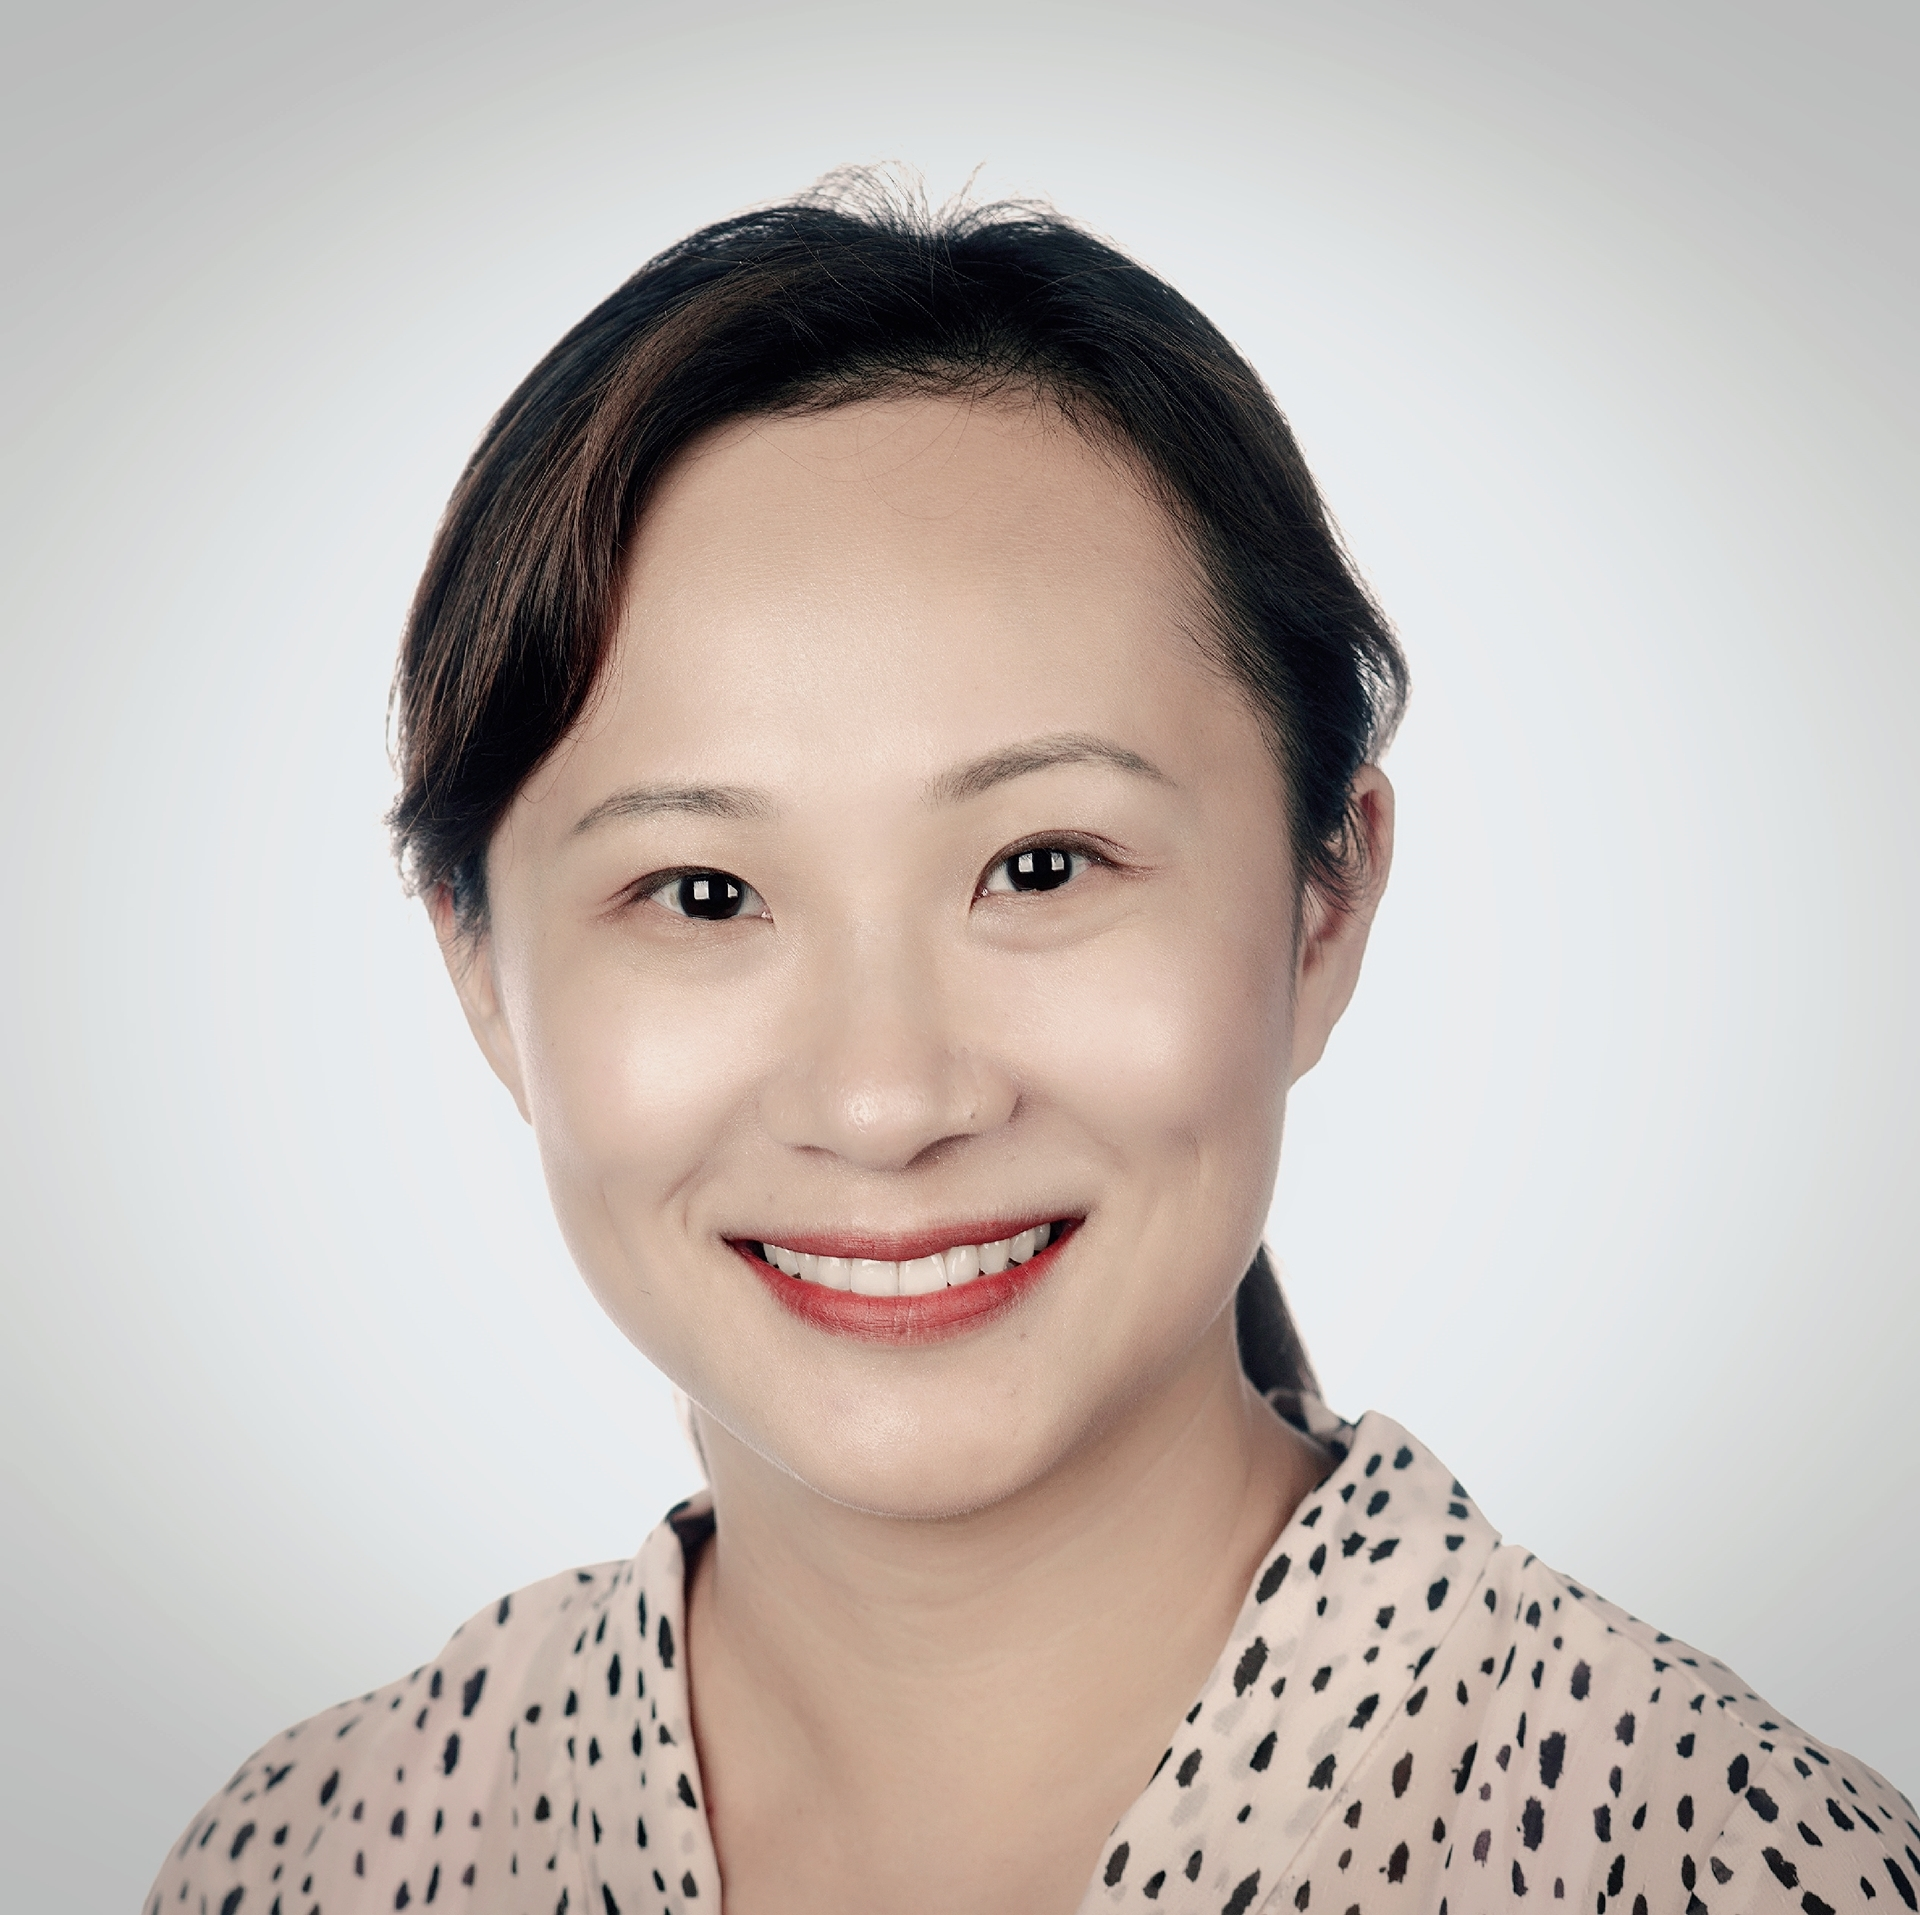 Yuanzhi Tang, associate professor in the School of Earth and Atmospheric Sciences, and director of the Tang Research Group in Environmental Mineralogy and Biogeochemistry